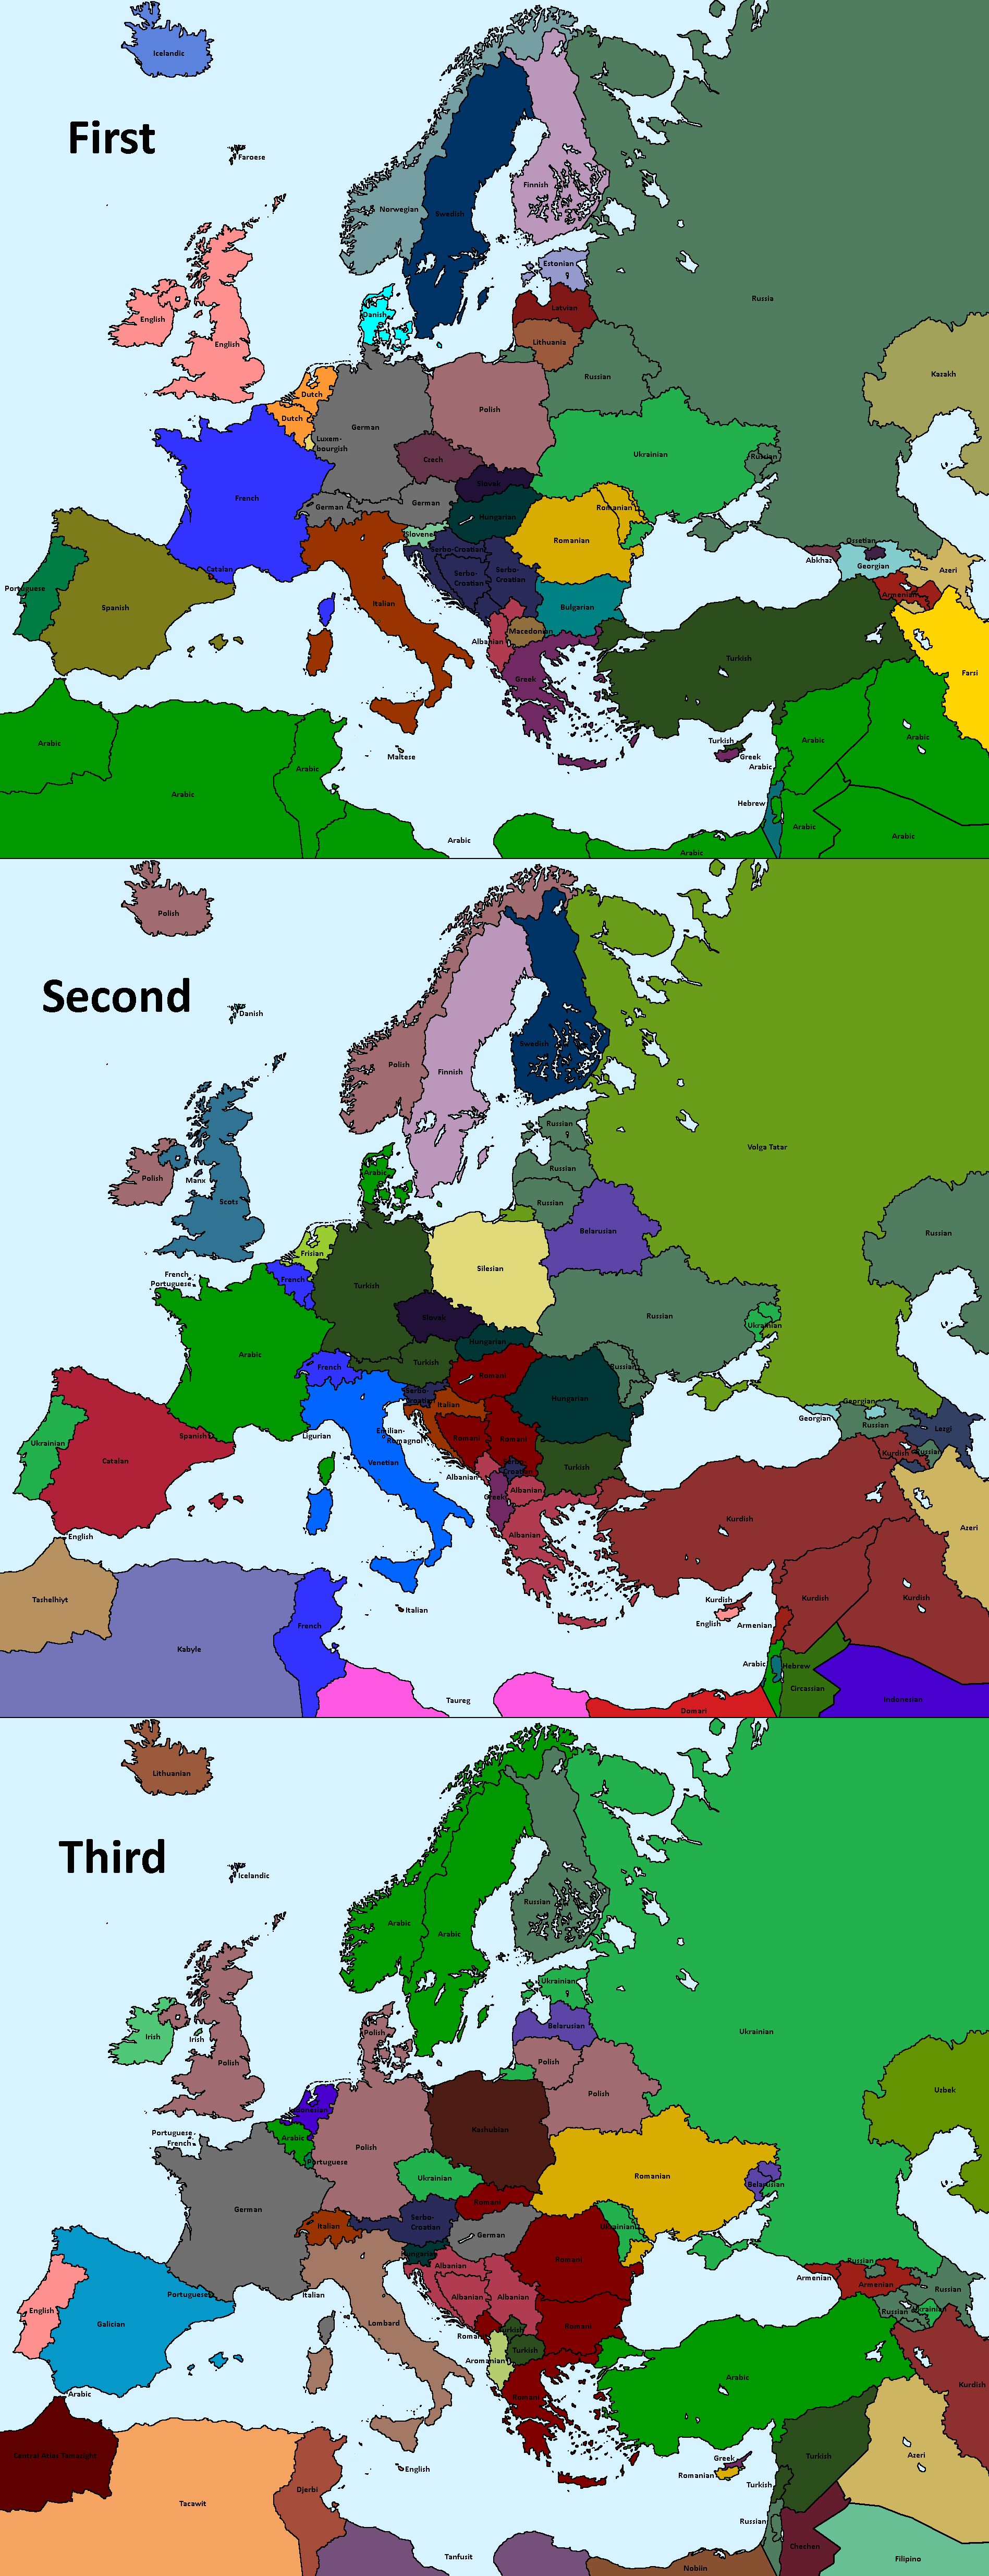 top 3 most spoken languages by country in europe